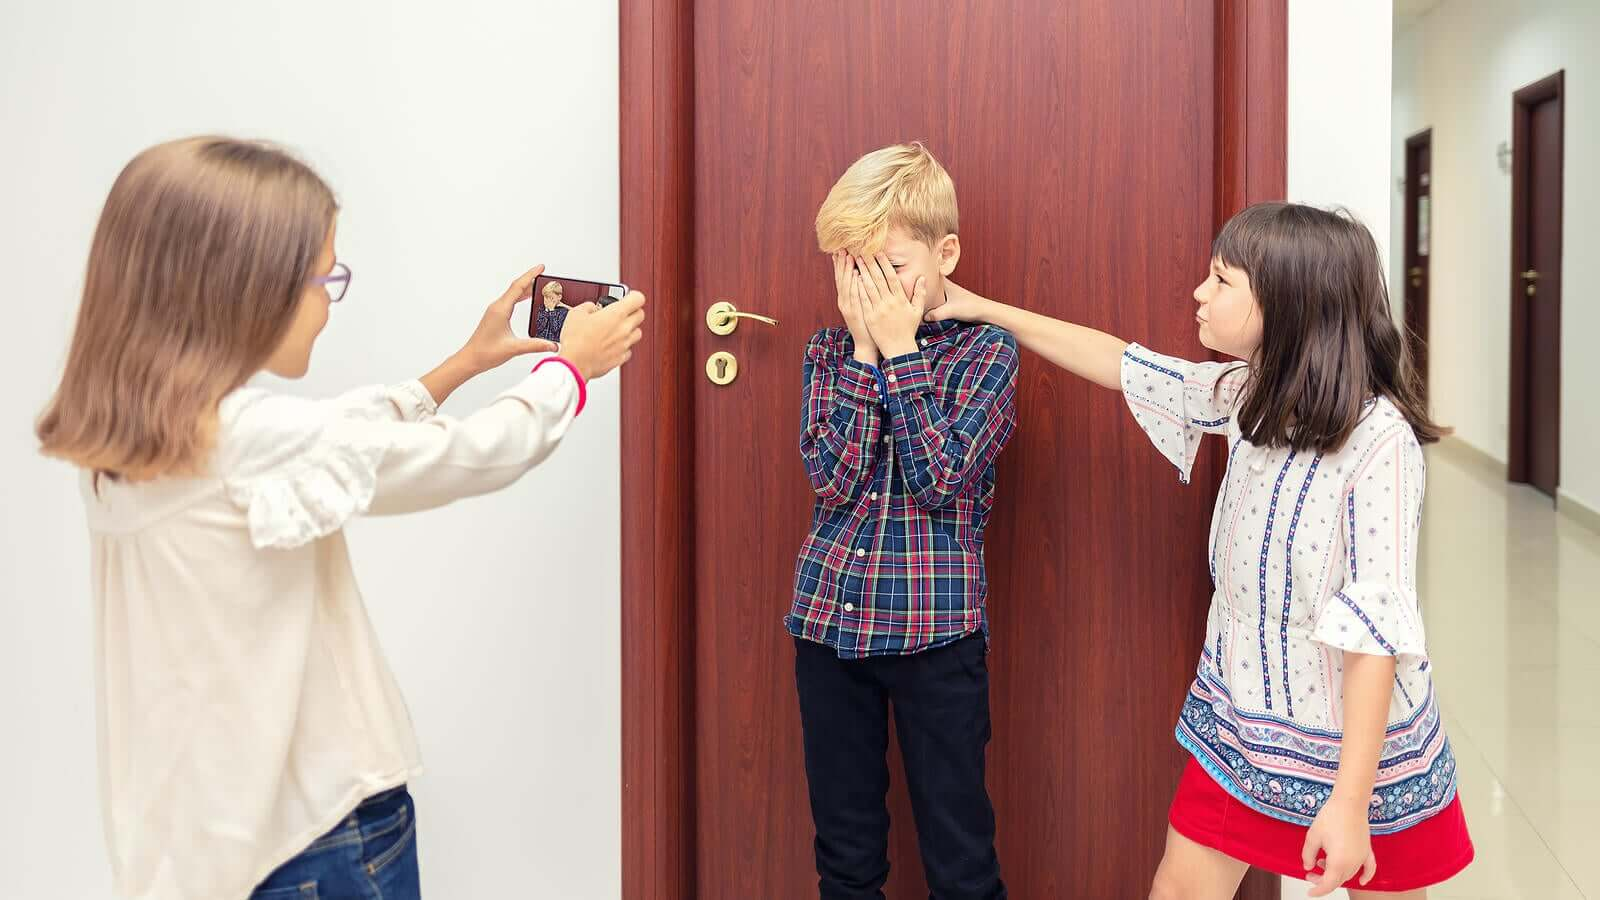 8 Tips to Overcome the Consequences of Bullying